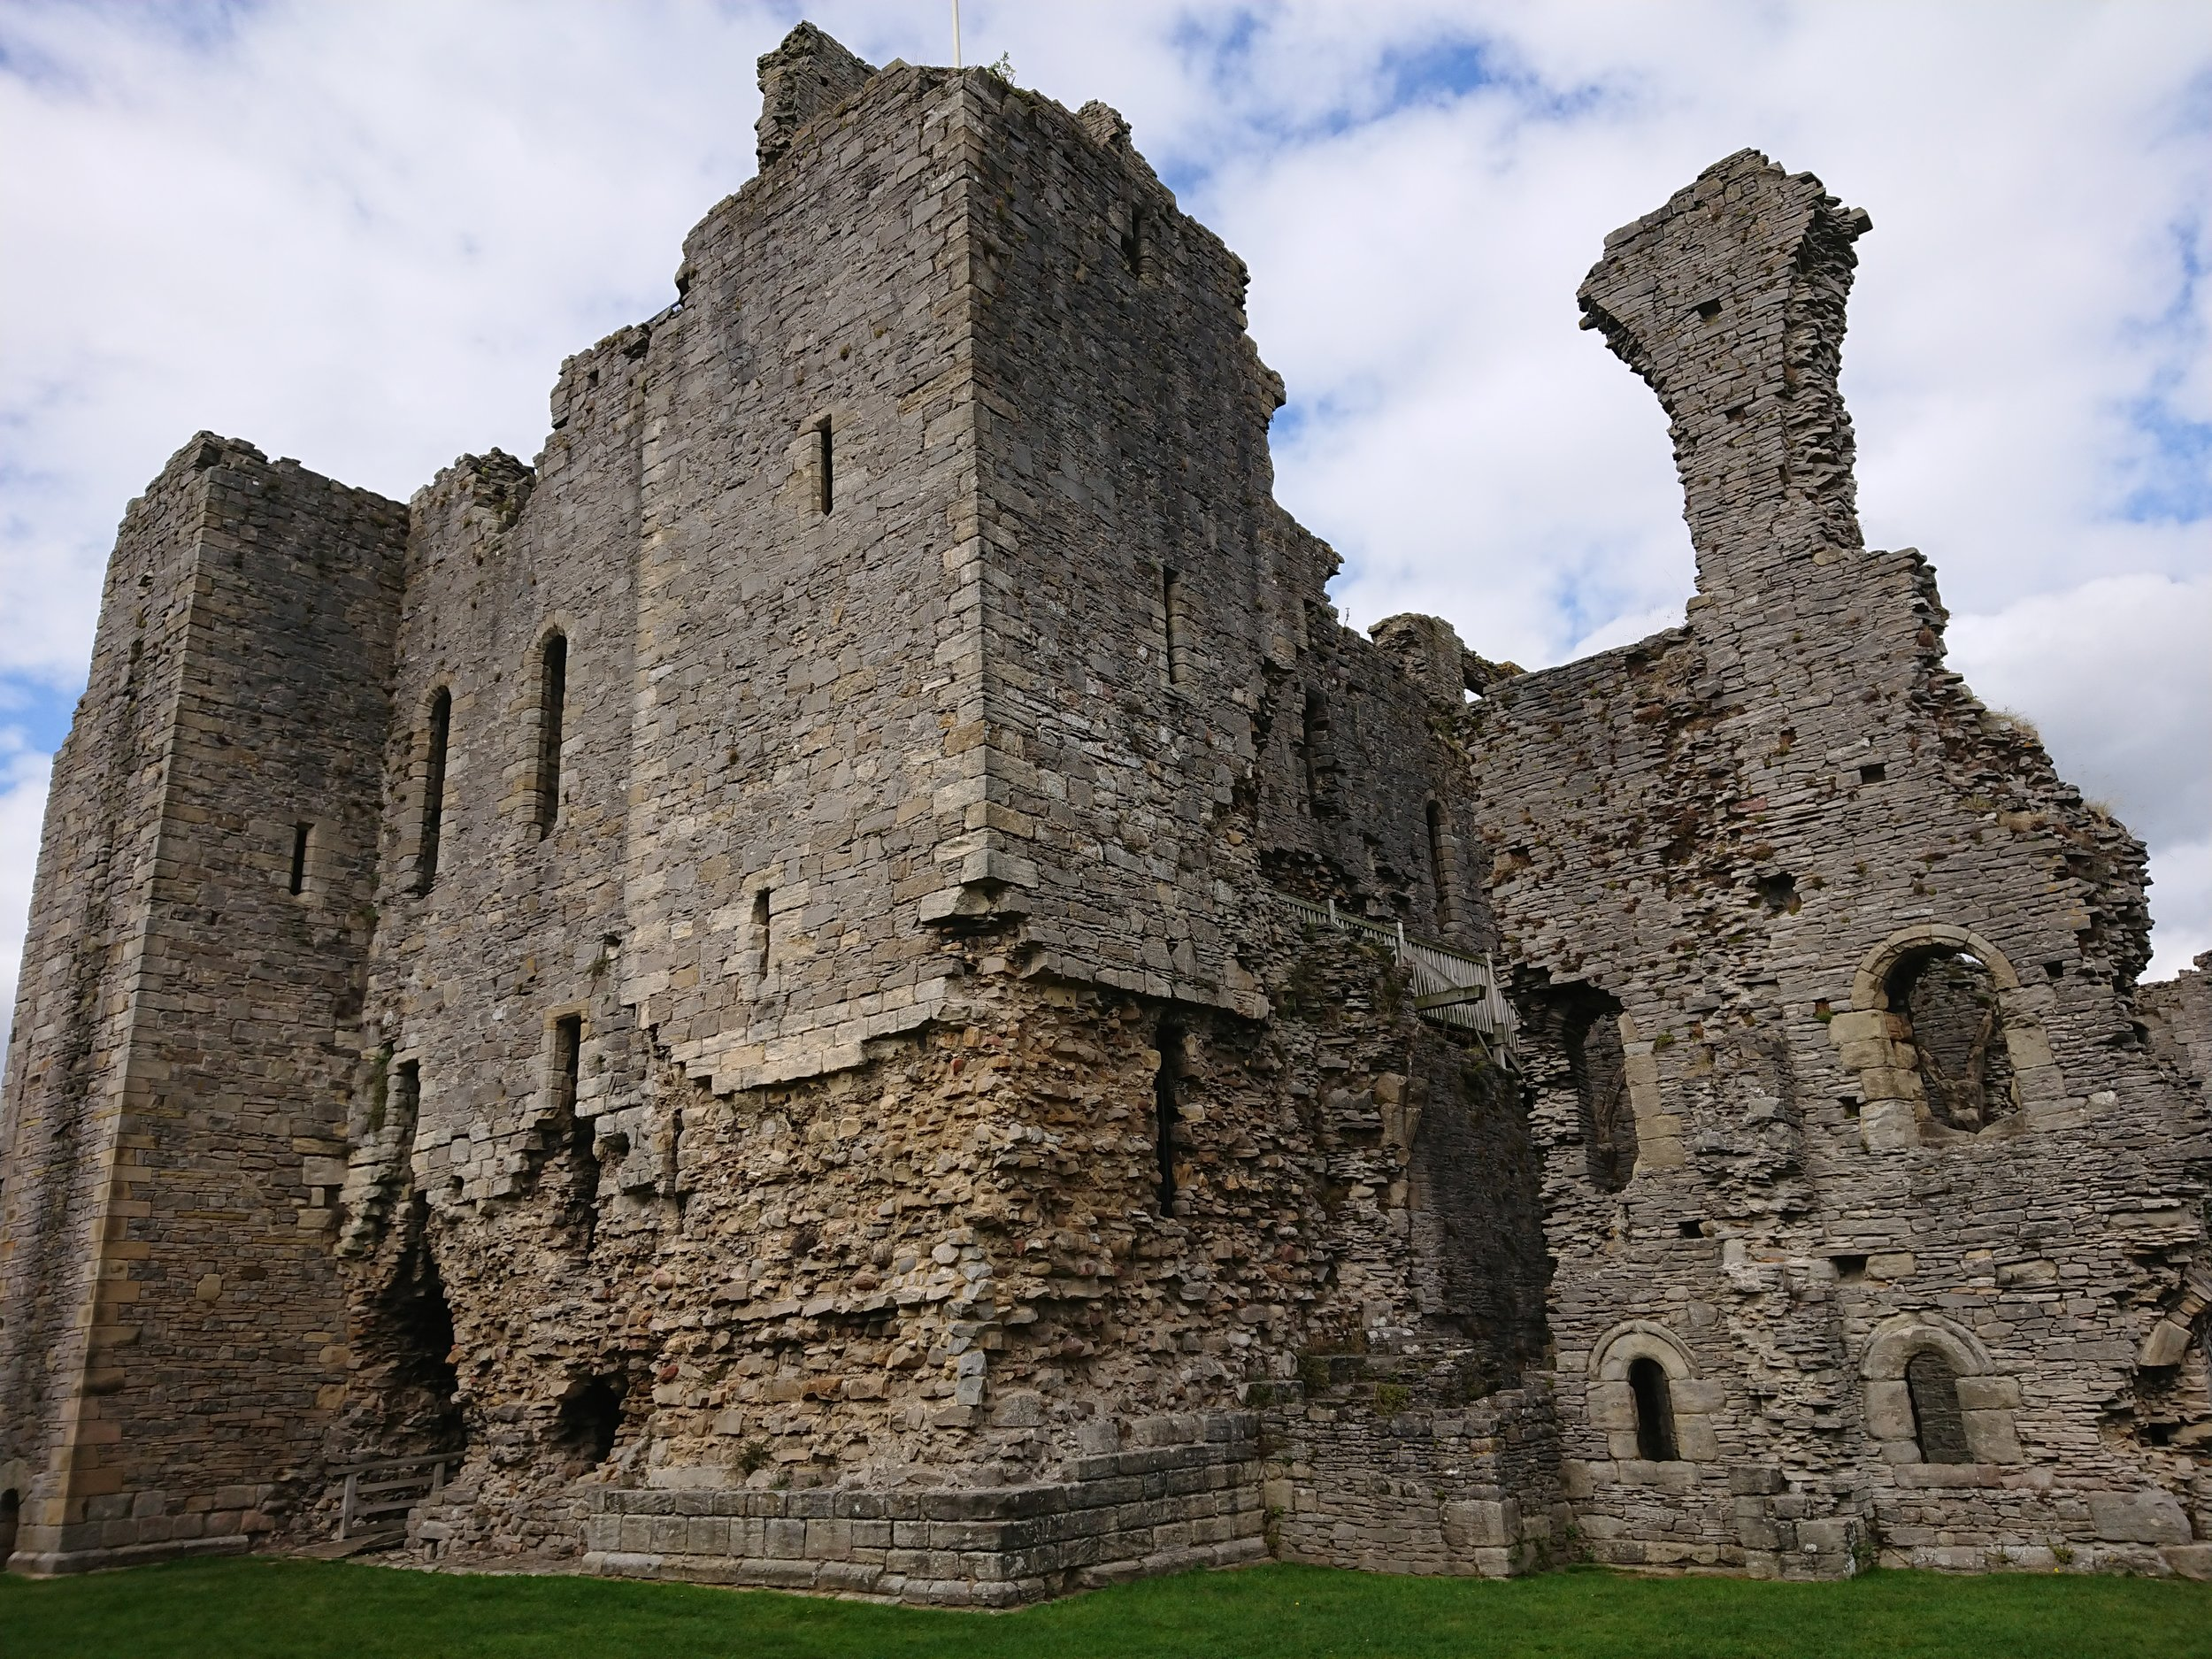 Middleham_Castle_-_The_Keep_or_Great_Tower_remains.jpg